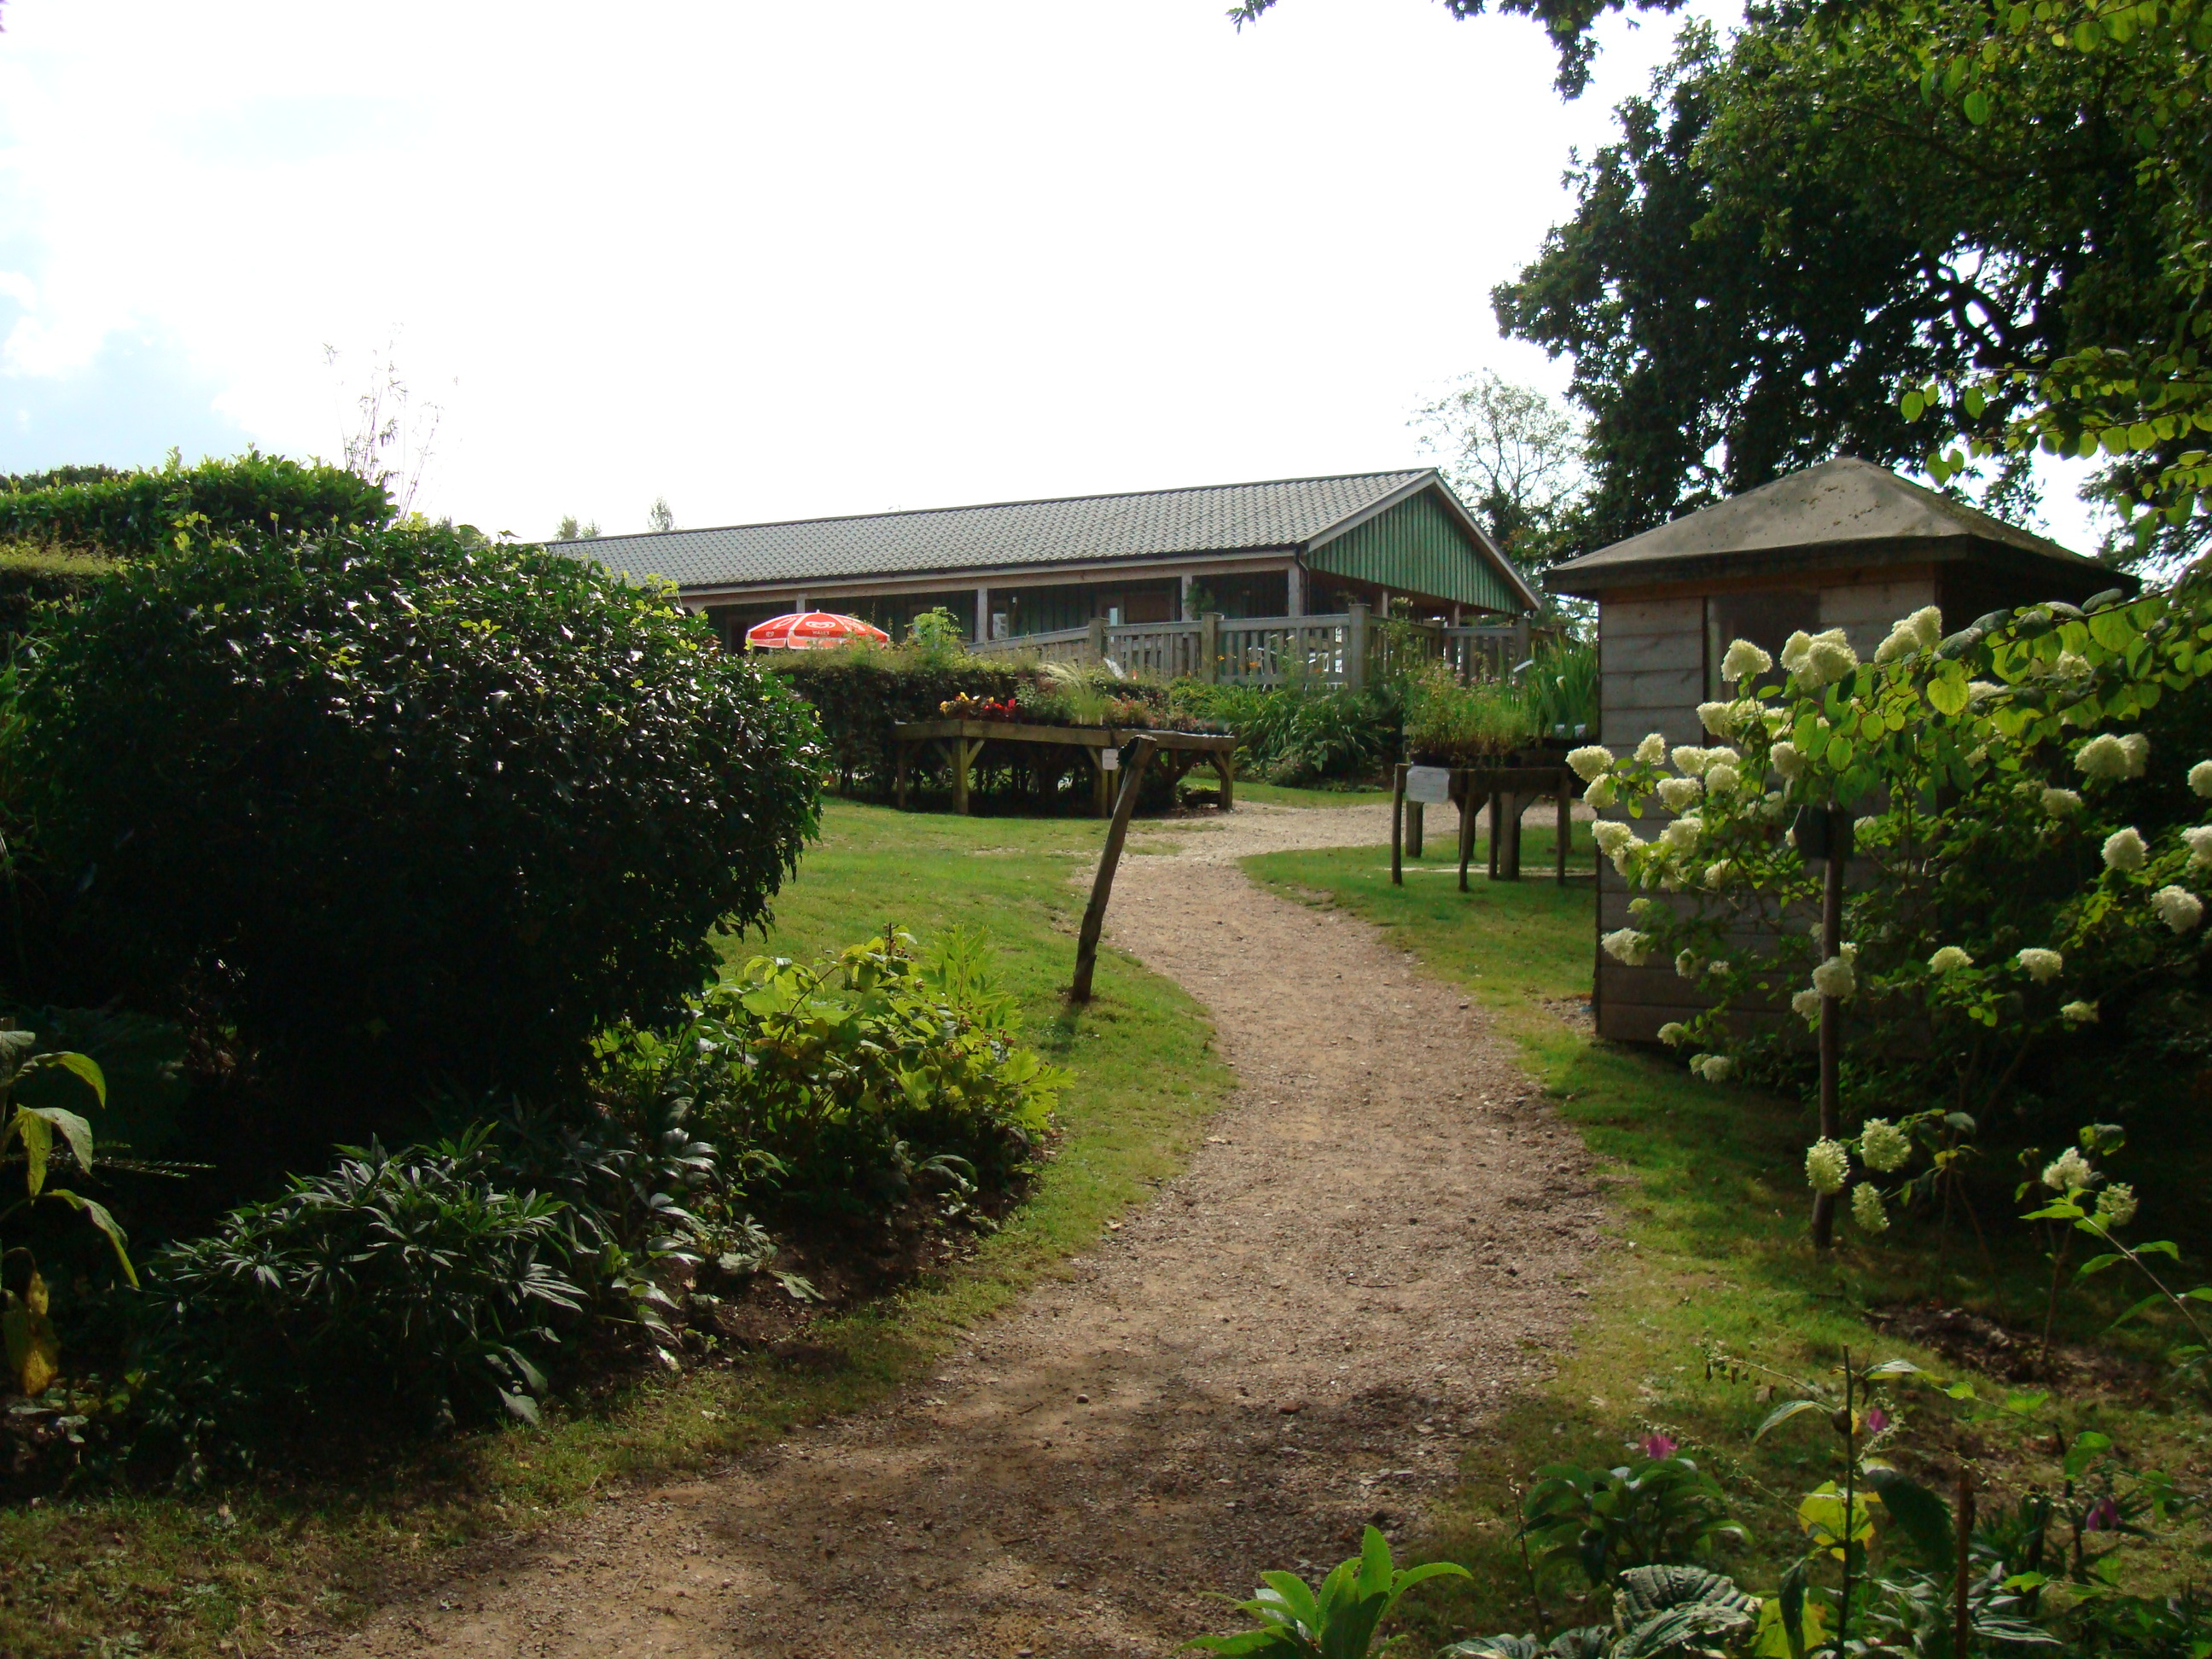 Fairhaven Woodland and Water Gardens has its very own tea room - so when looking for cafes in the Broads National Park and the surrounding area, why not pay these gorgeous gardens a visit at the same time?